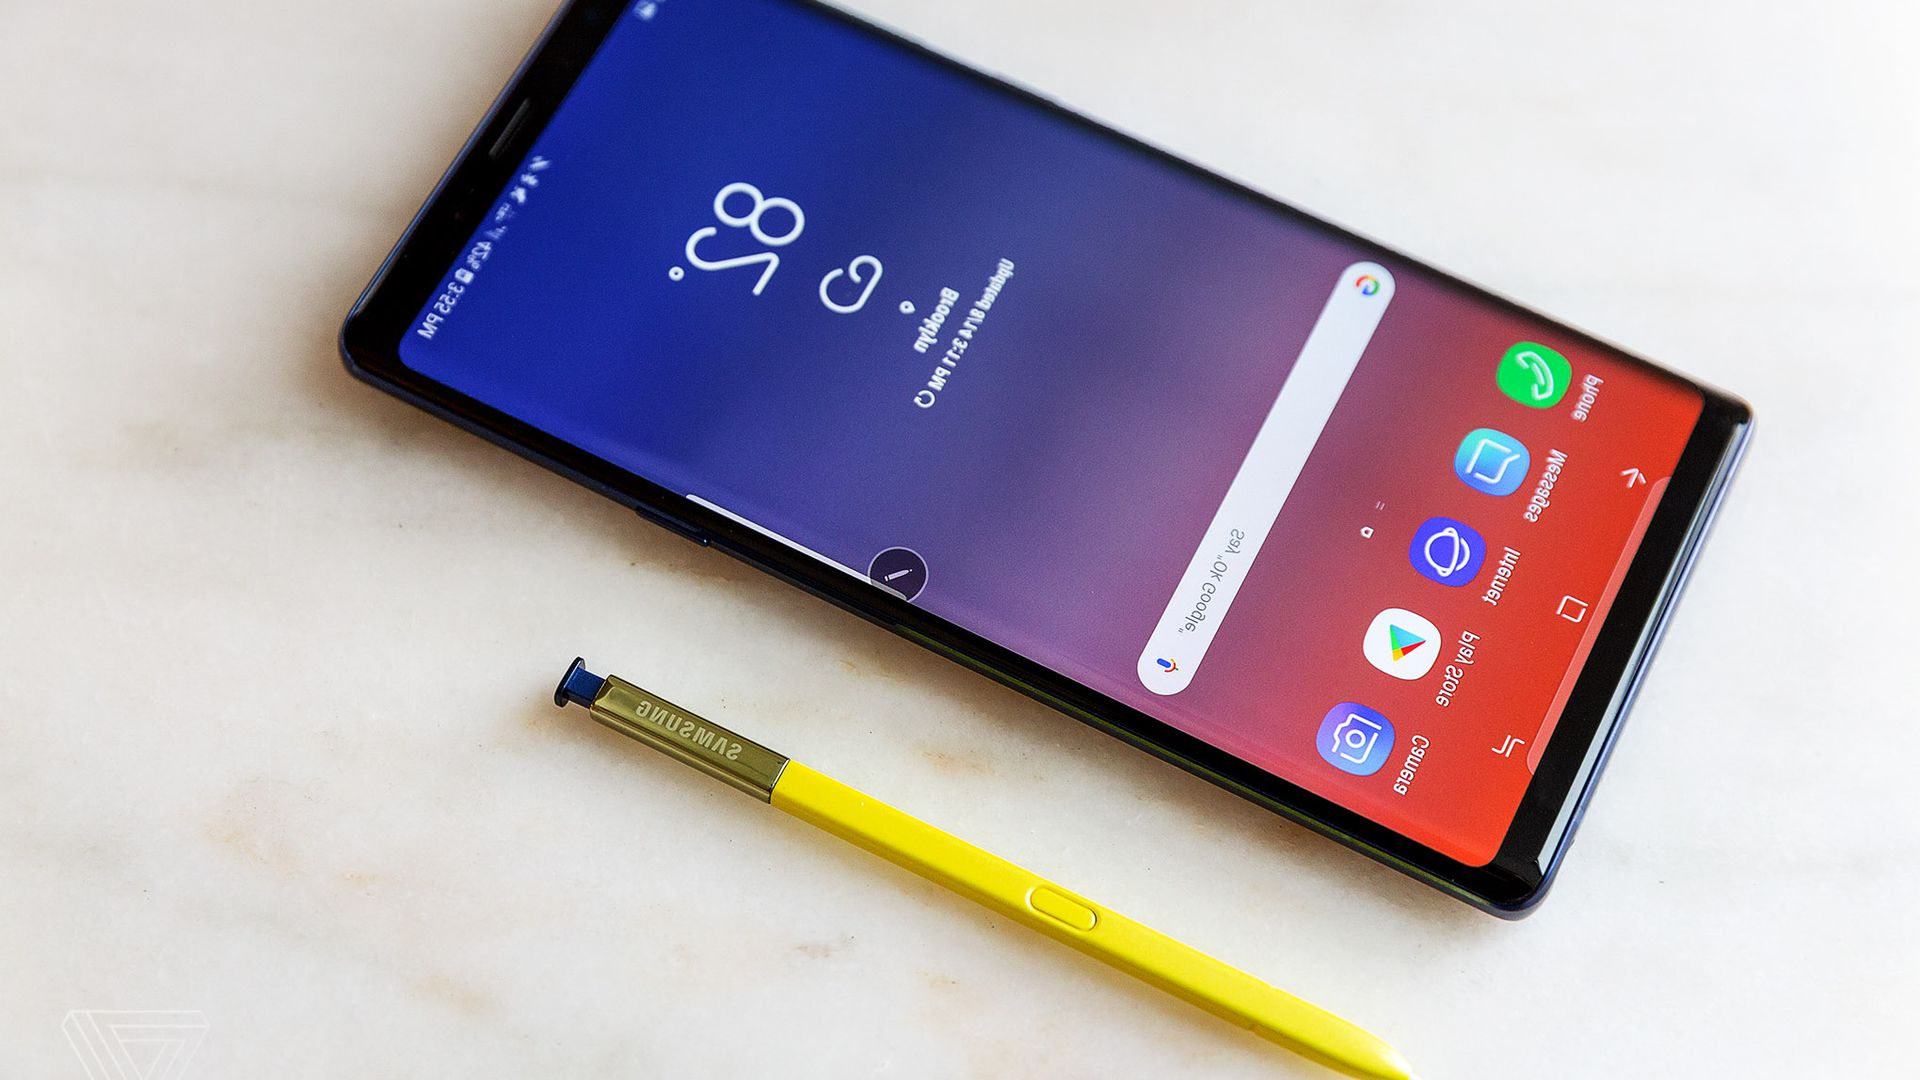 Tech & Science: Samsung will only allow free themes to be used for